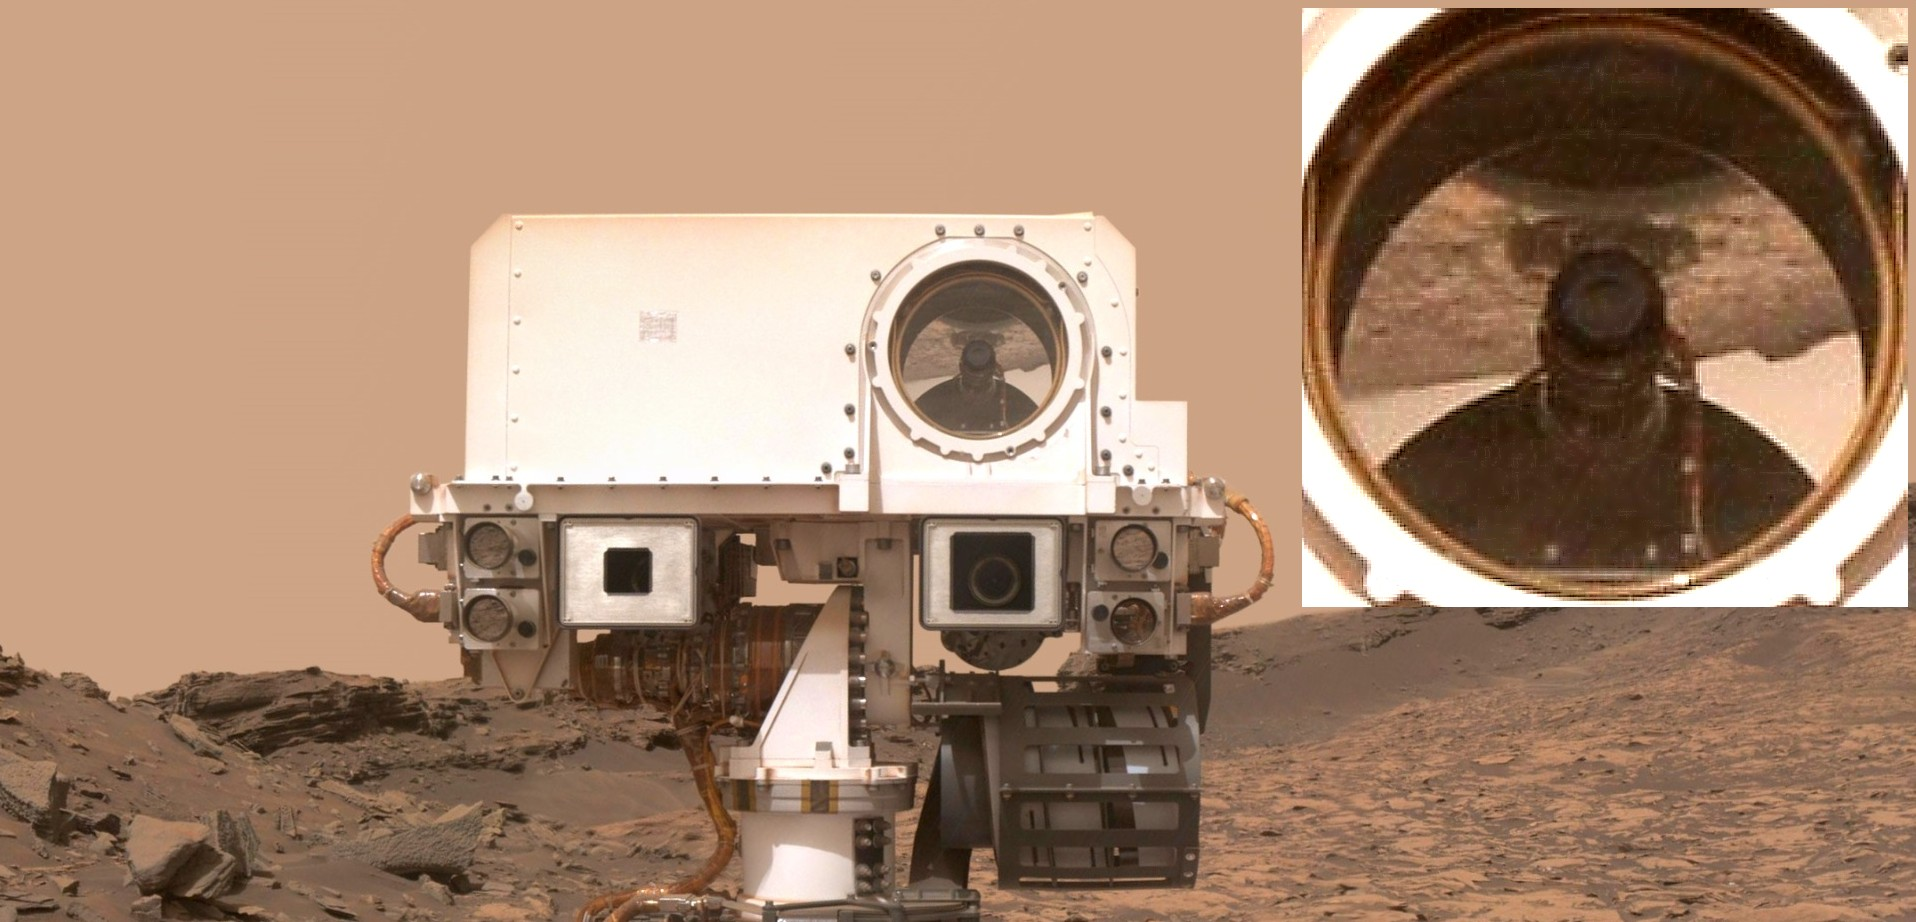 msl-curiosity-murray-buttes-selfie-pia20844-detail-1